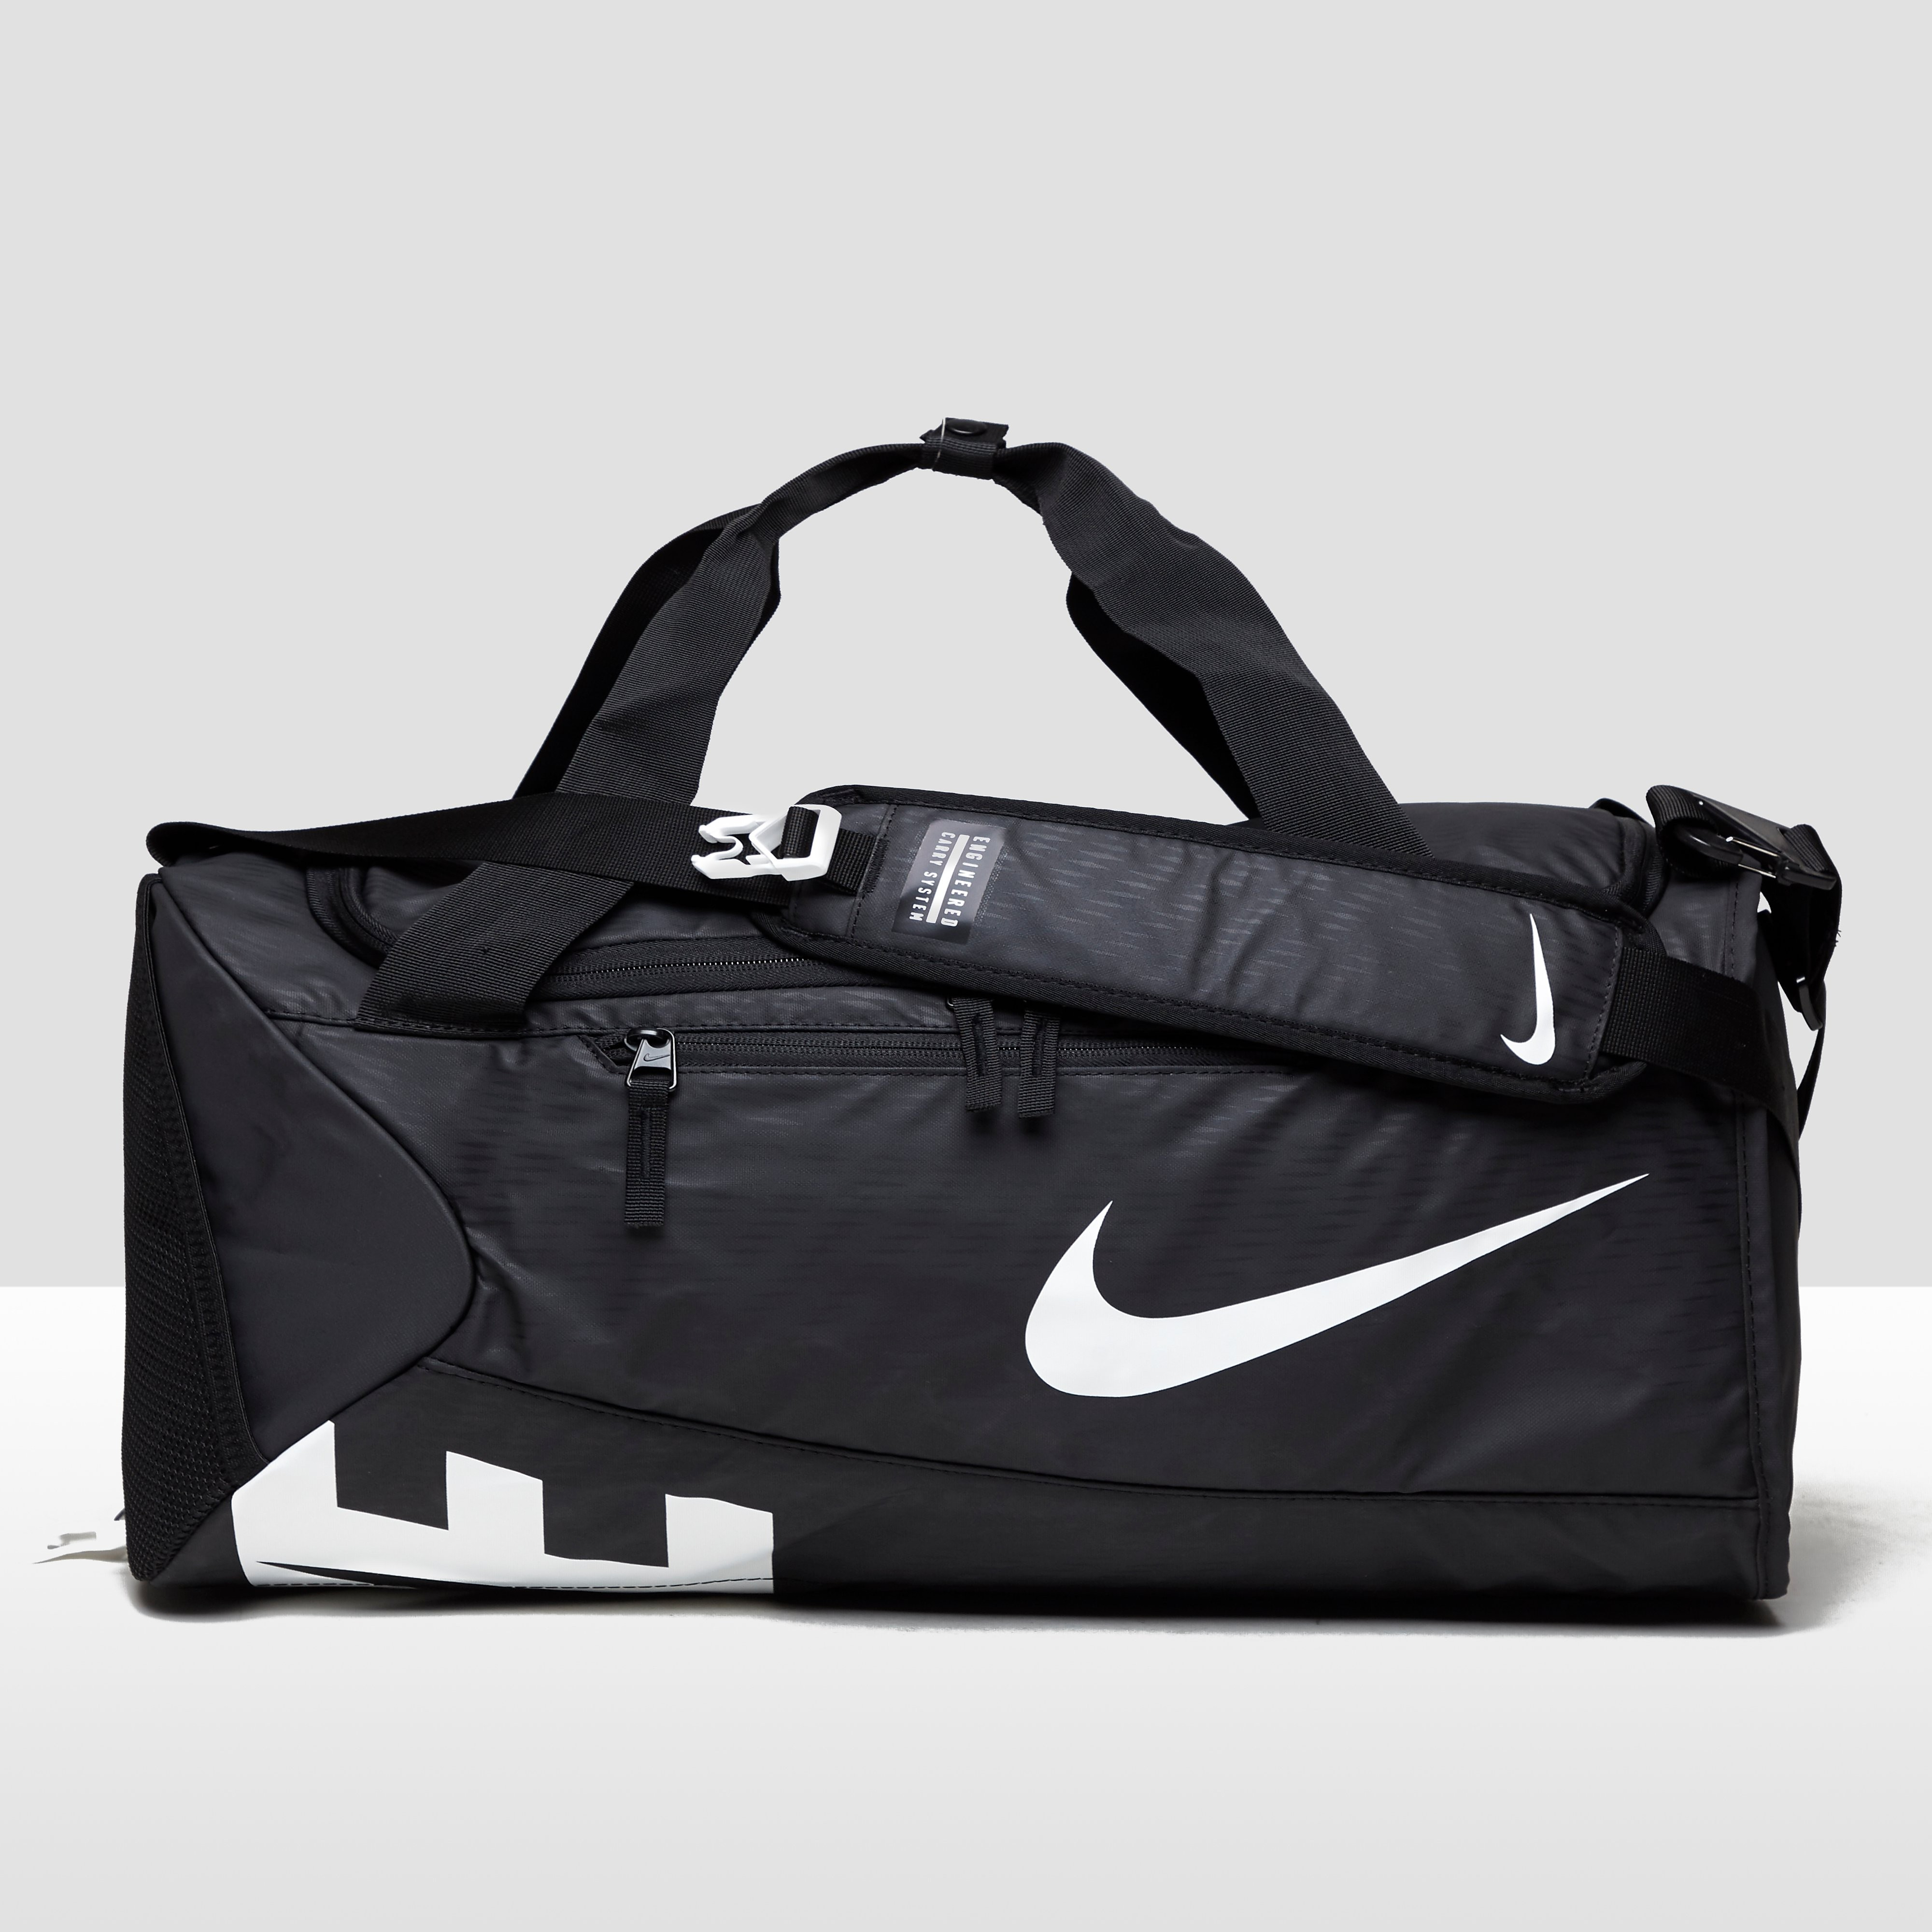 NIKE ALPHA ADAPT CROSSBODY DUFFEL SMALL